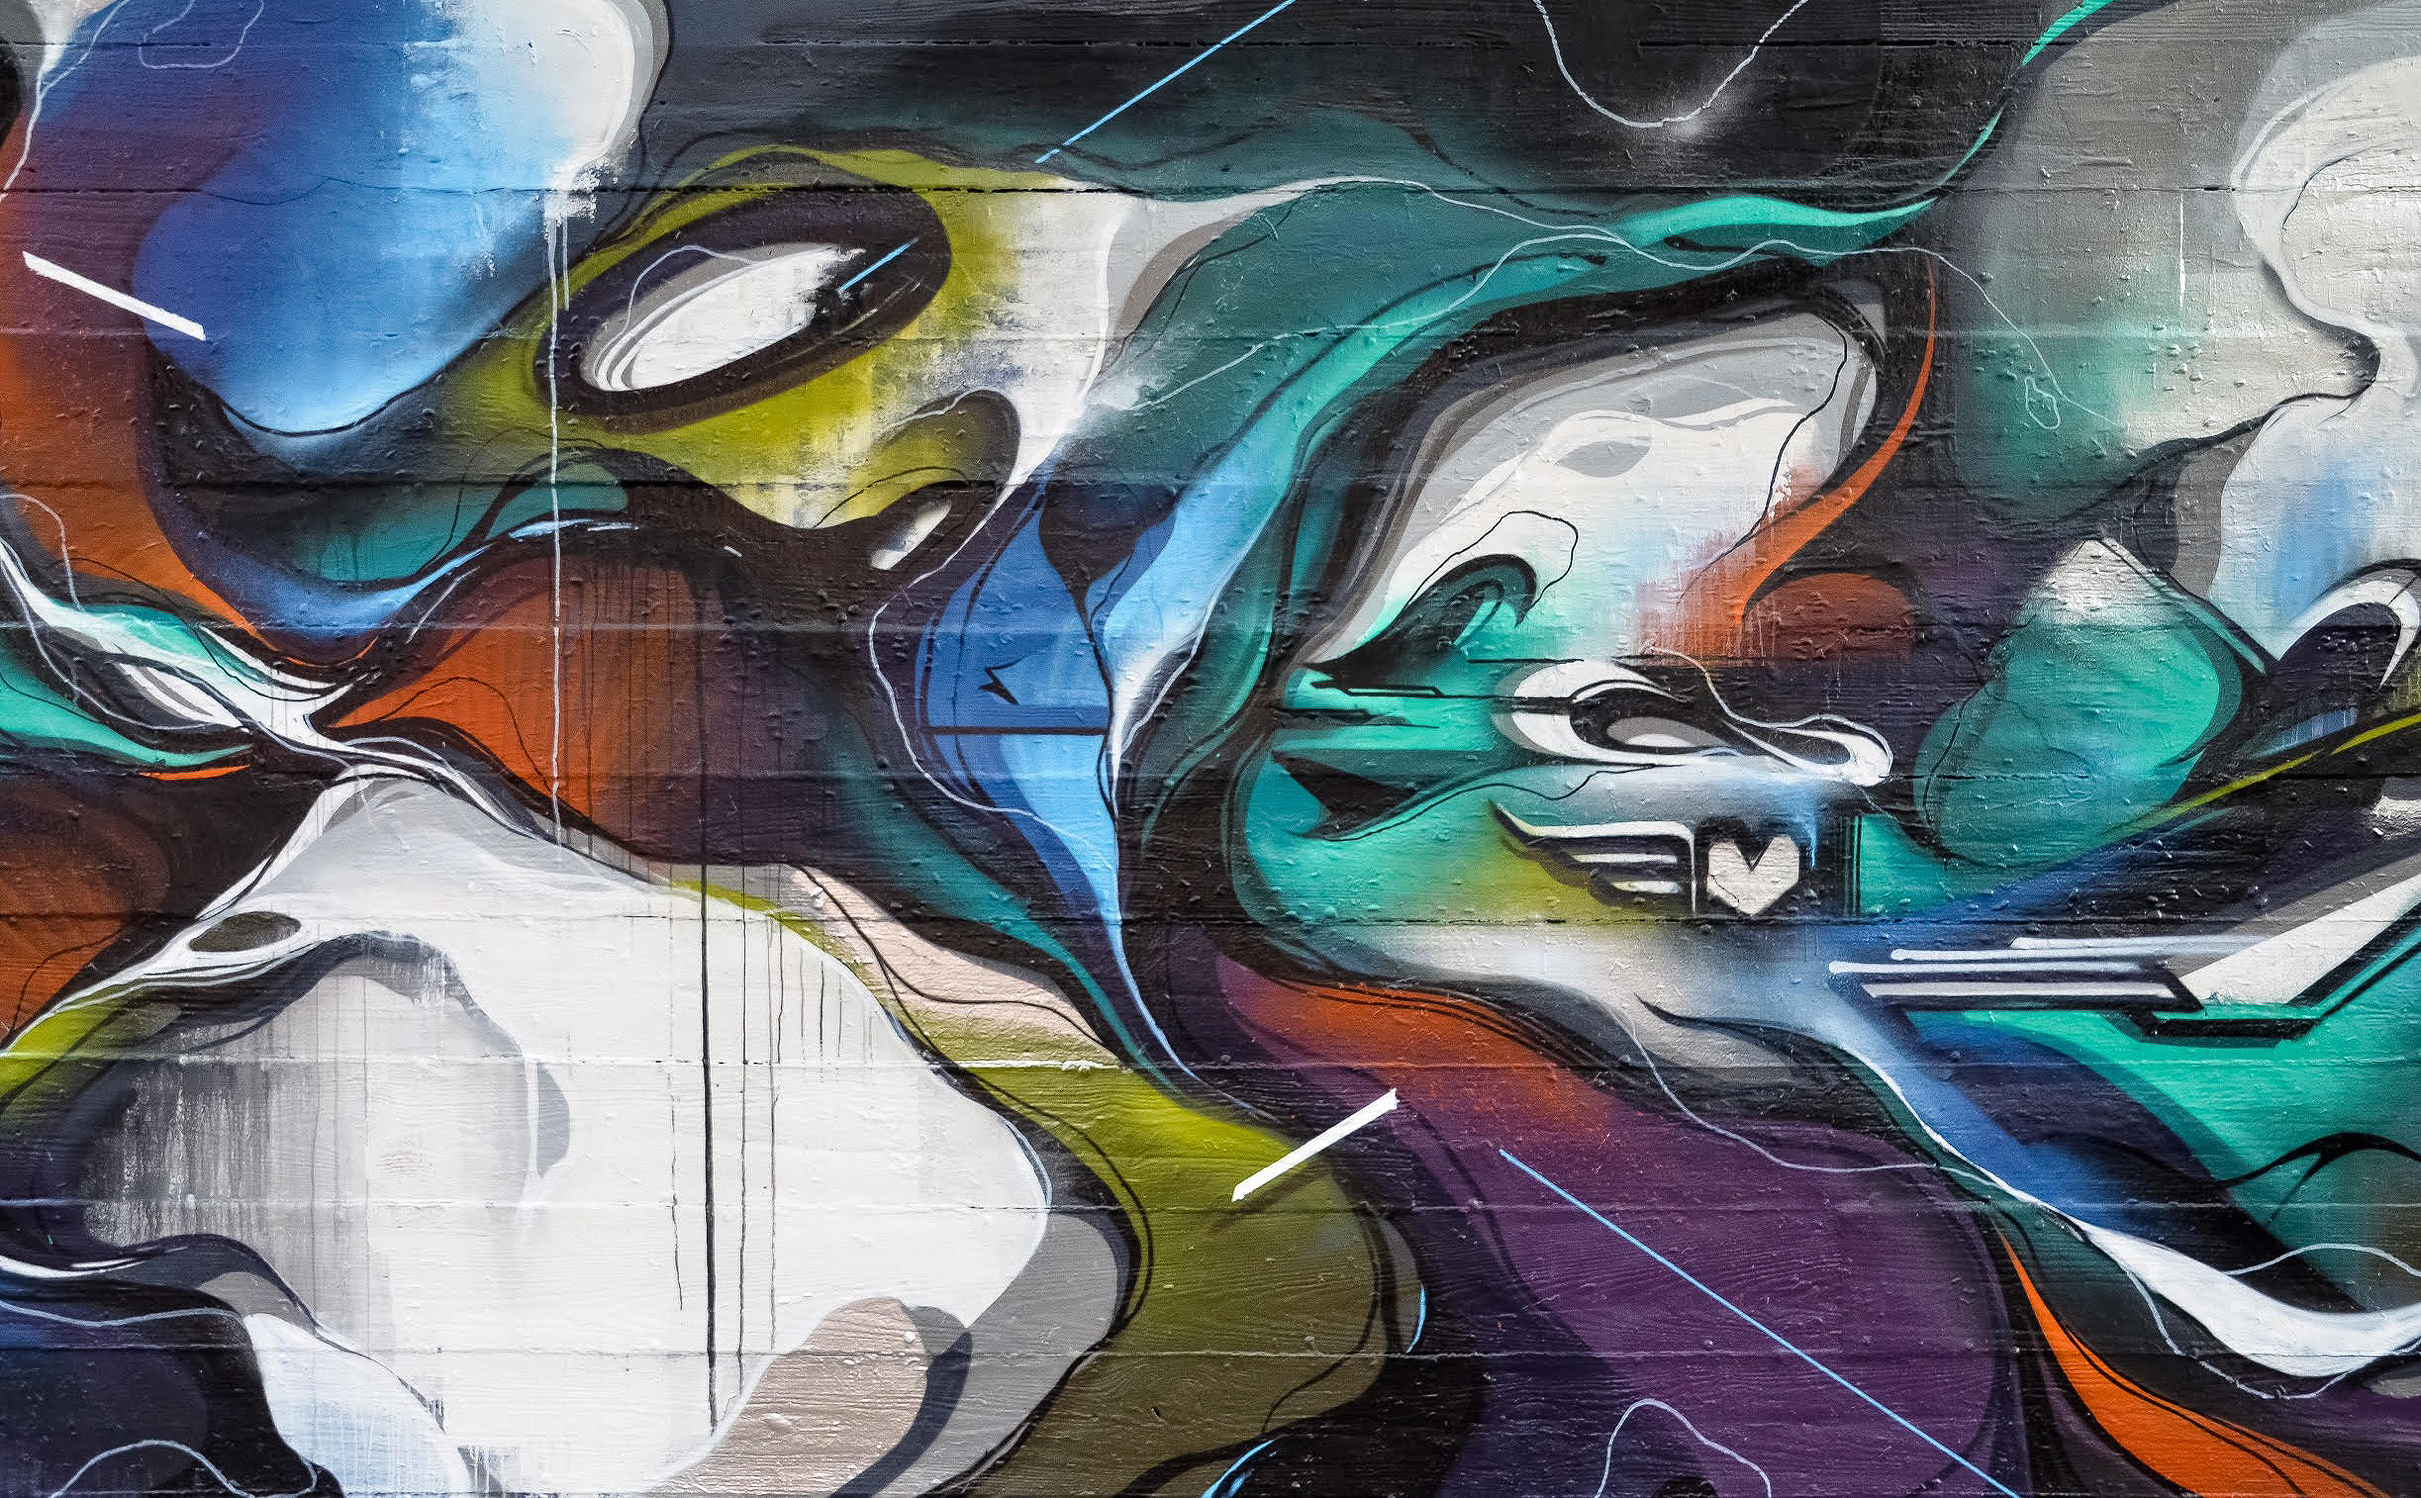 A work by Does - Chicago usa mural detail 4